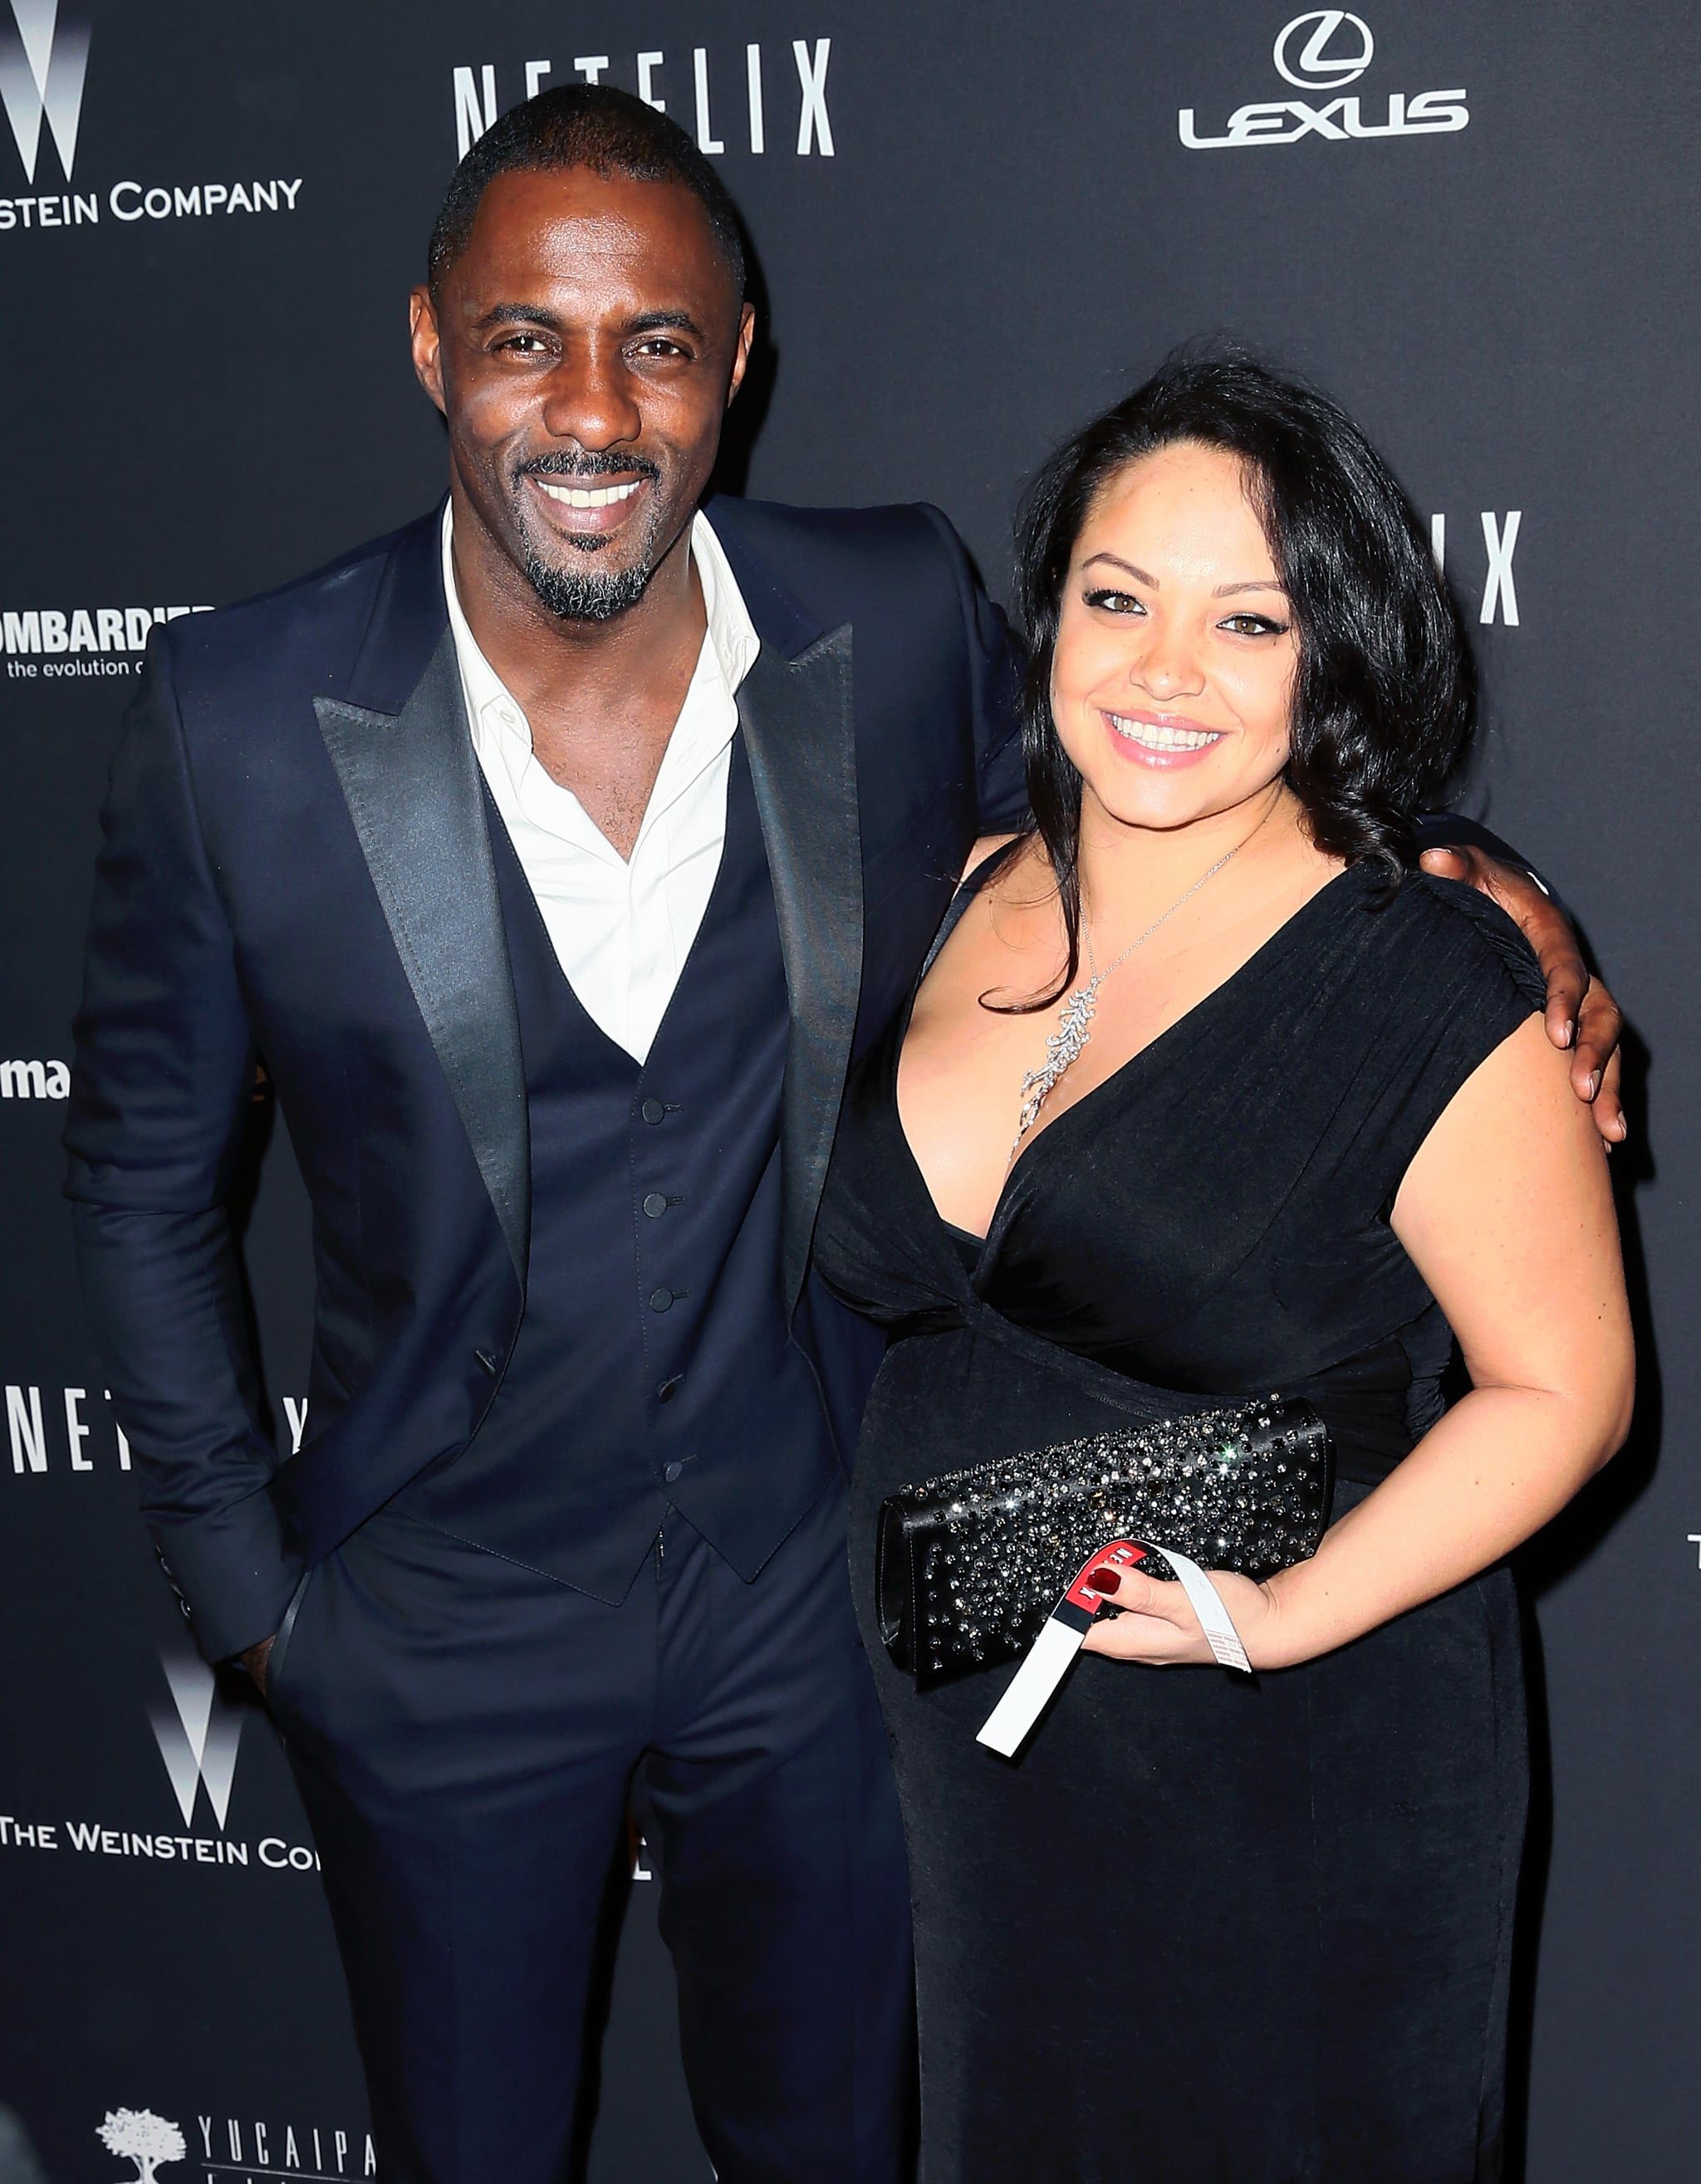 Idris elba dating history